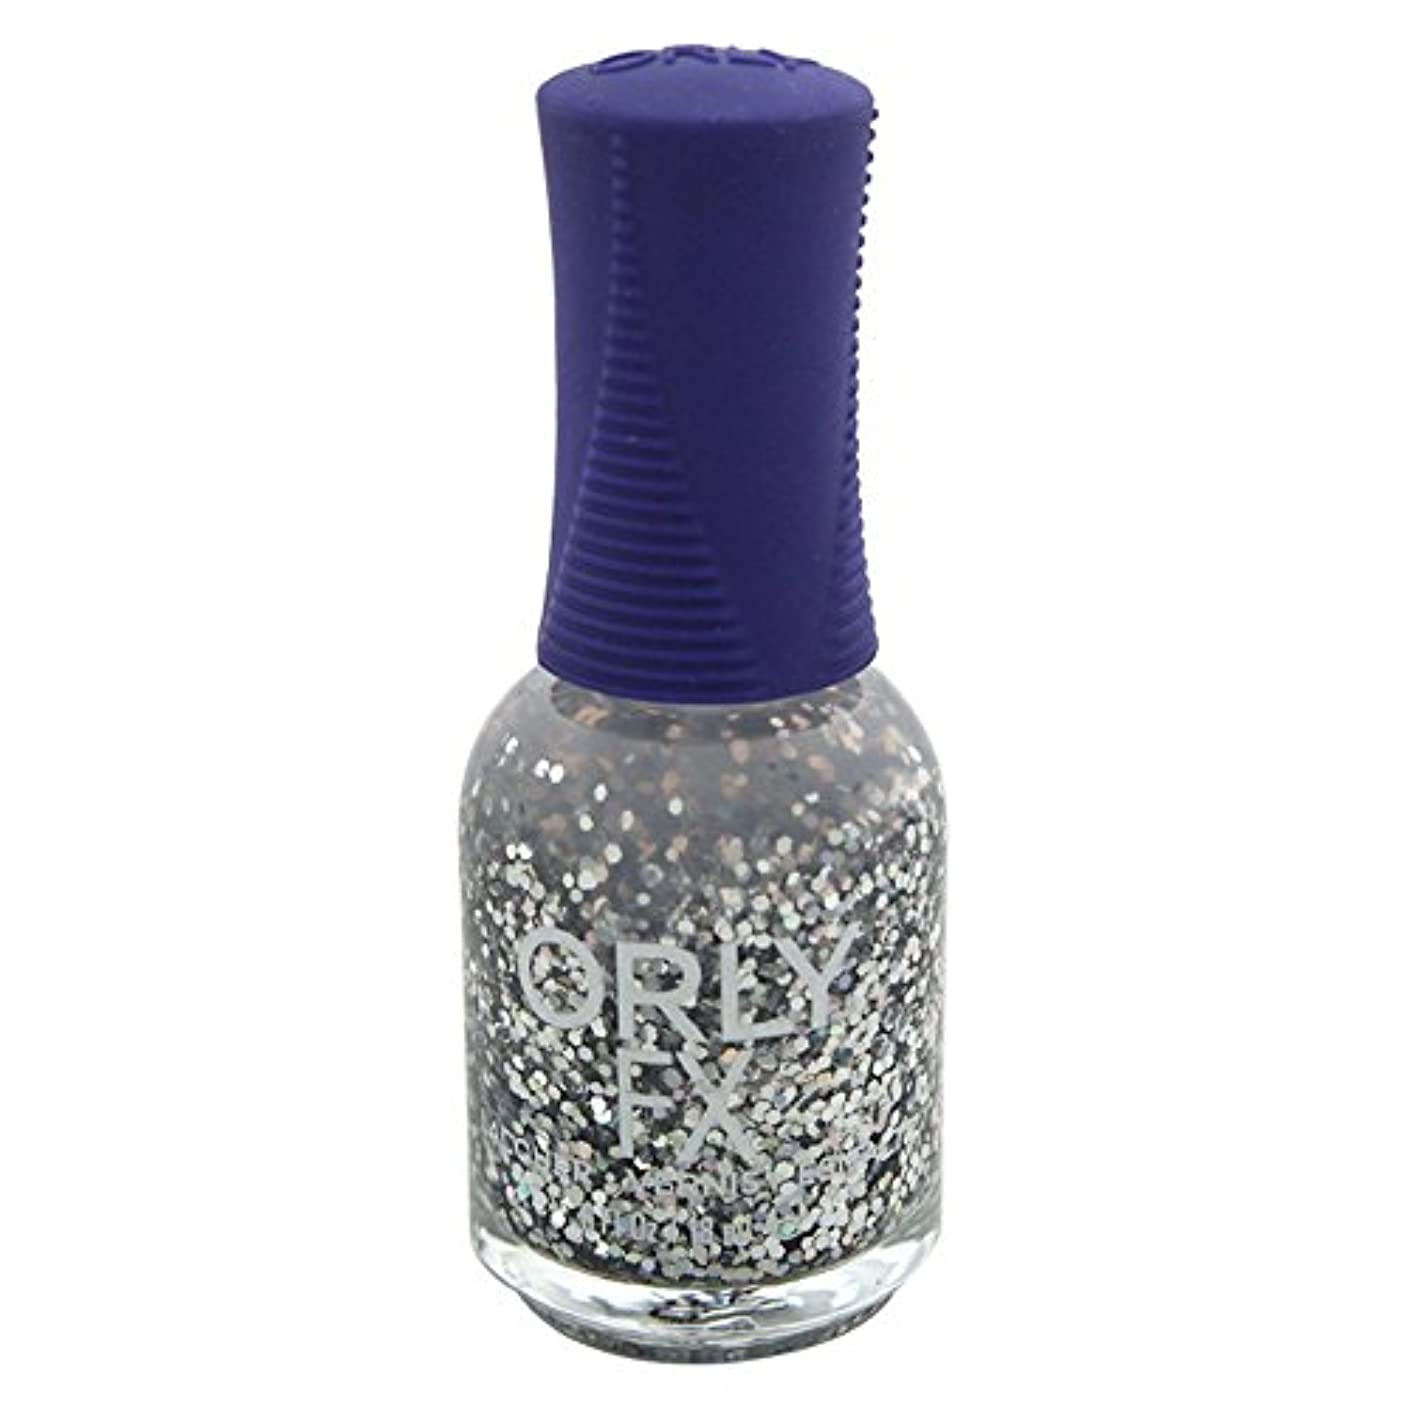 Orly Nail Lacquer - Holy Holo! - 0.6oz/18ml